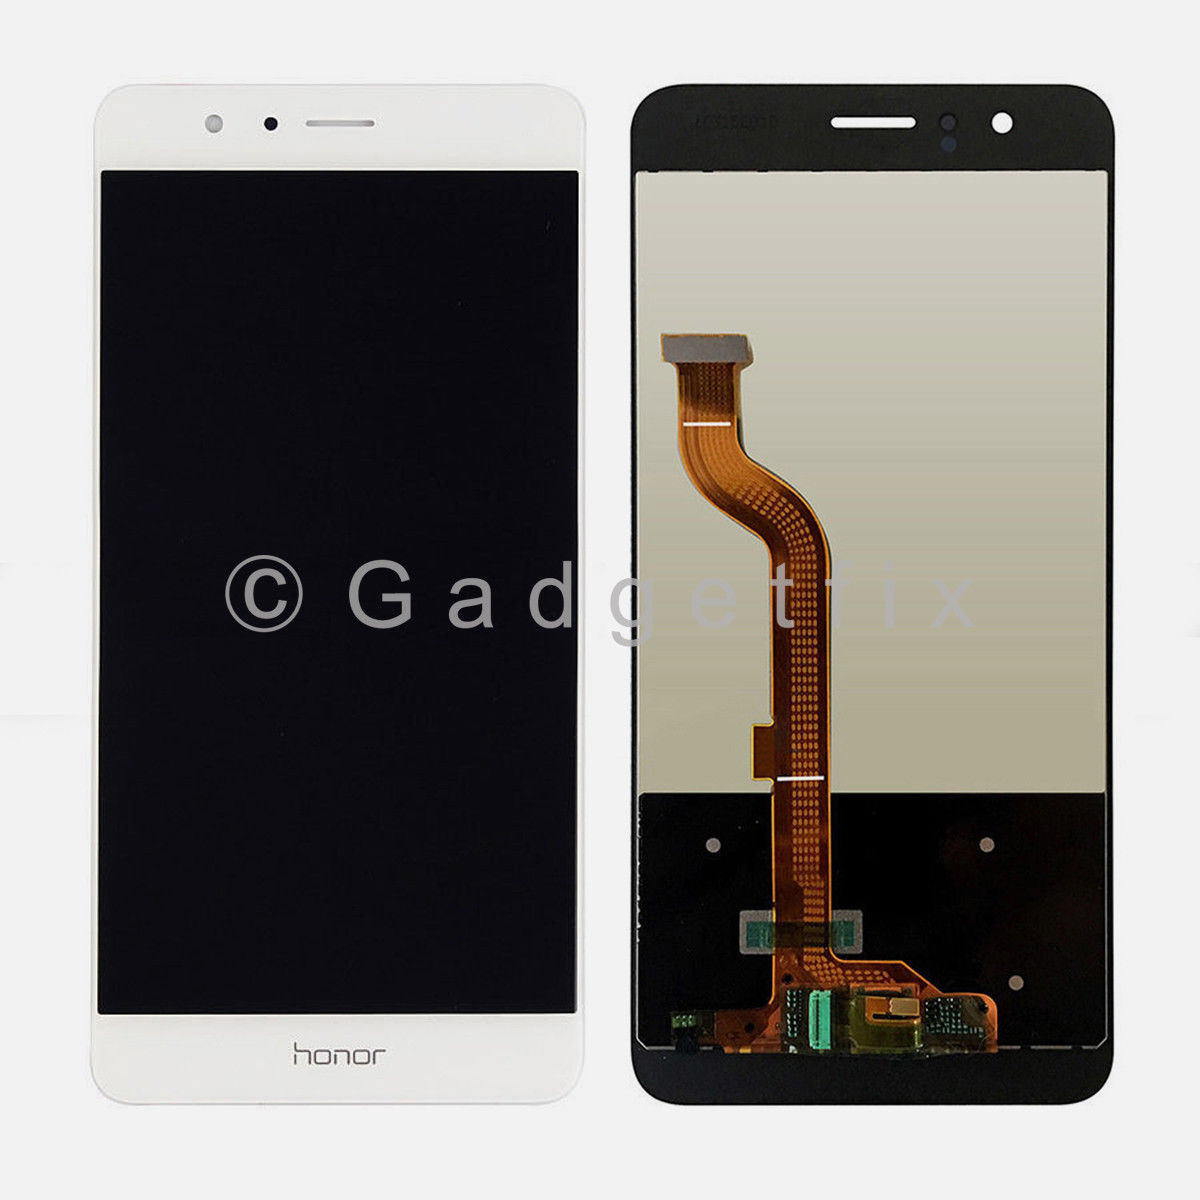 US White LCD Display Touch Screen Digitizer Replacement Parts For Huawei Honor 8